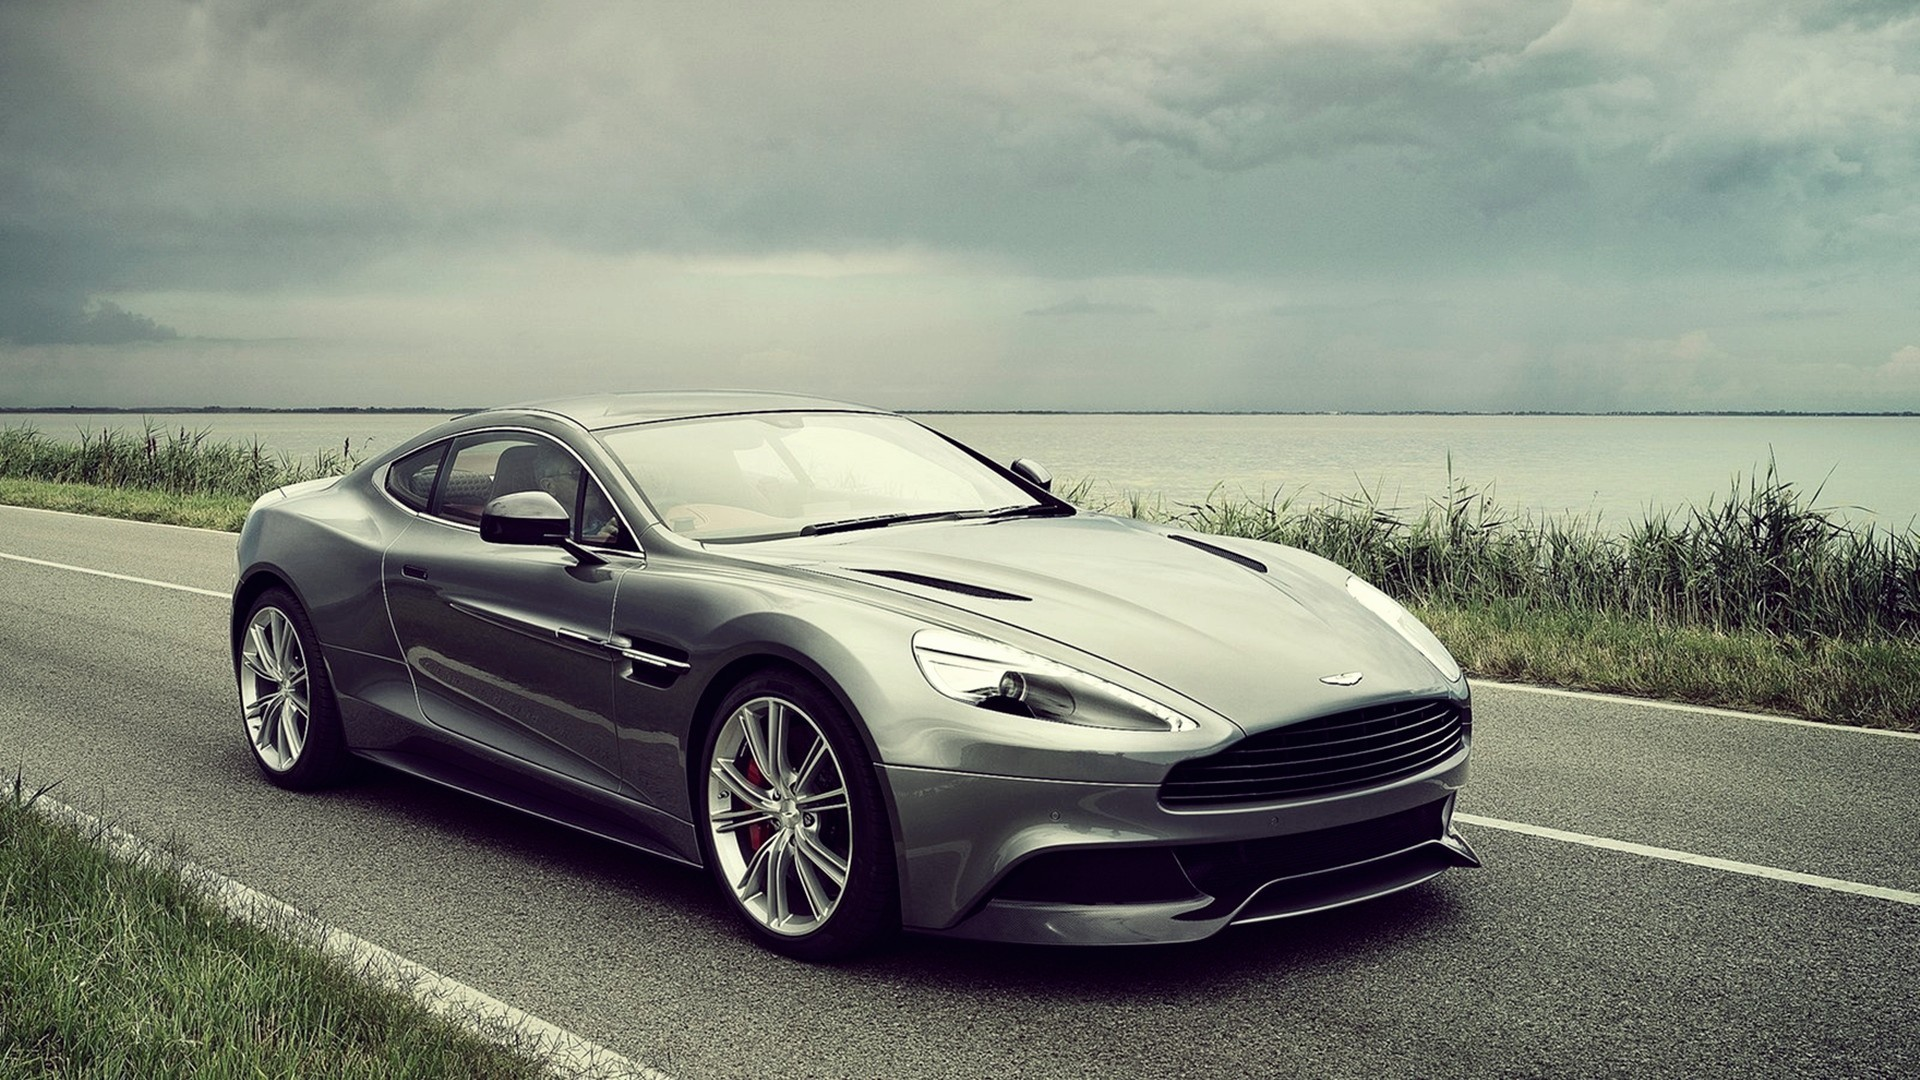 Aston Martin Vanquish Wallpapers HD Desktop and Mobile Backgrounds 1920x1080